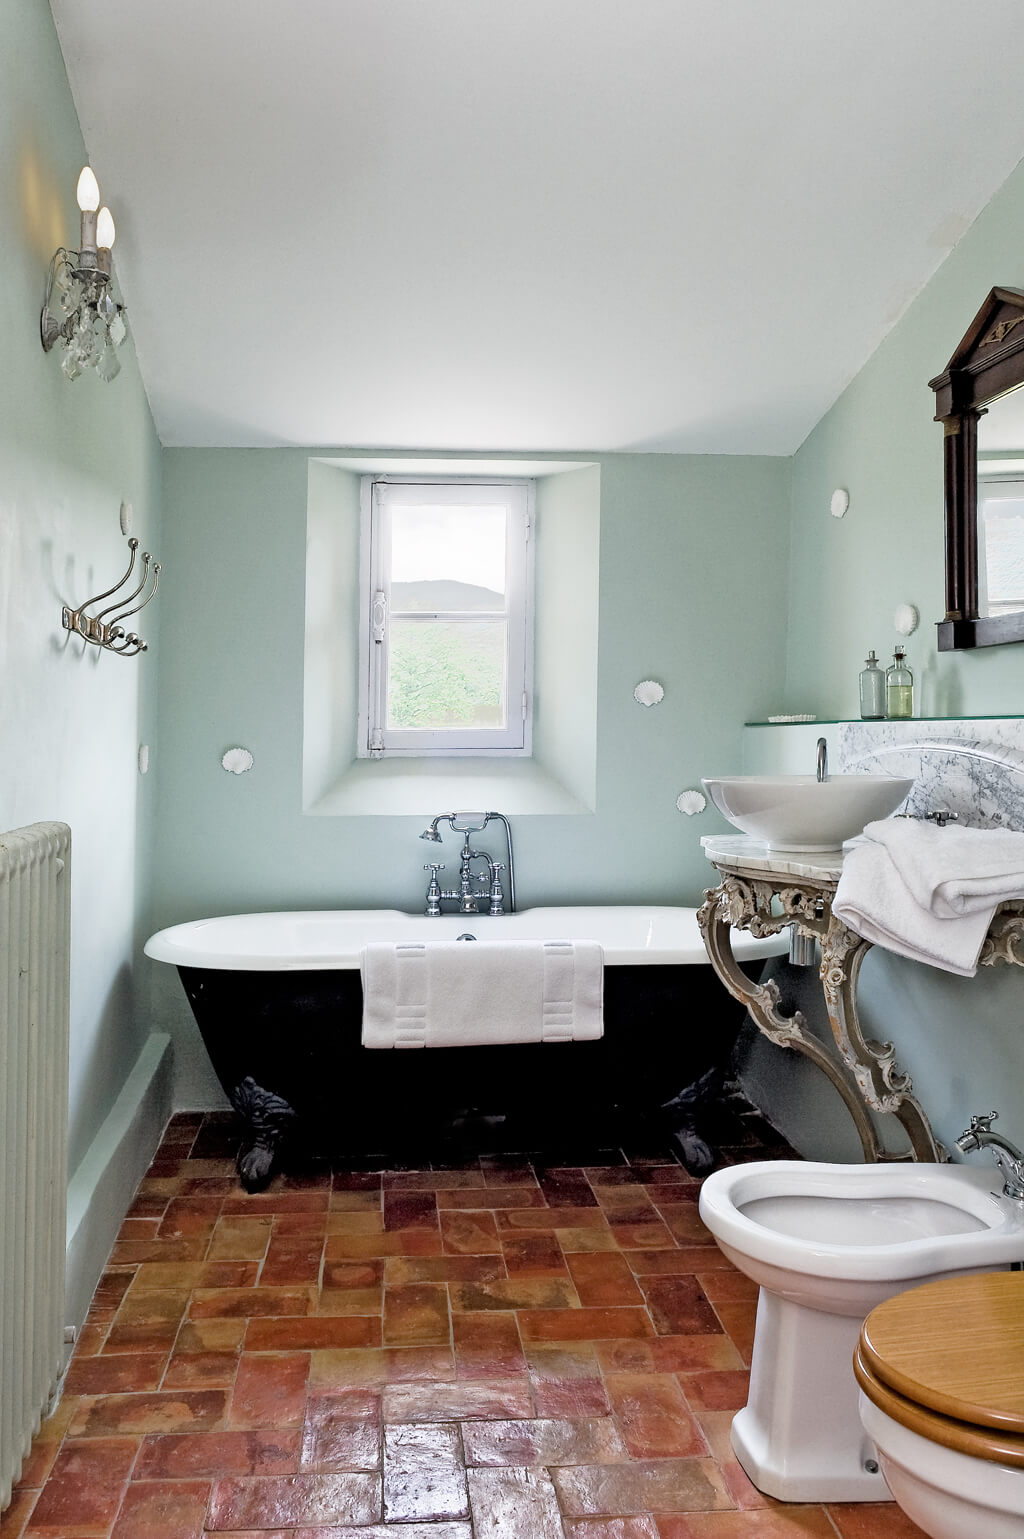 Vintage style bathroom in a French farmhouse with terracotta tile floor.